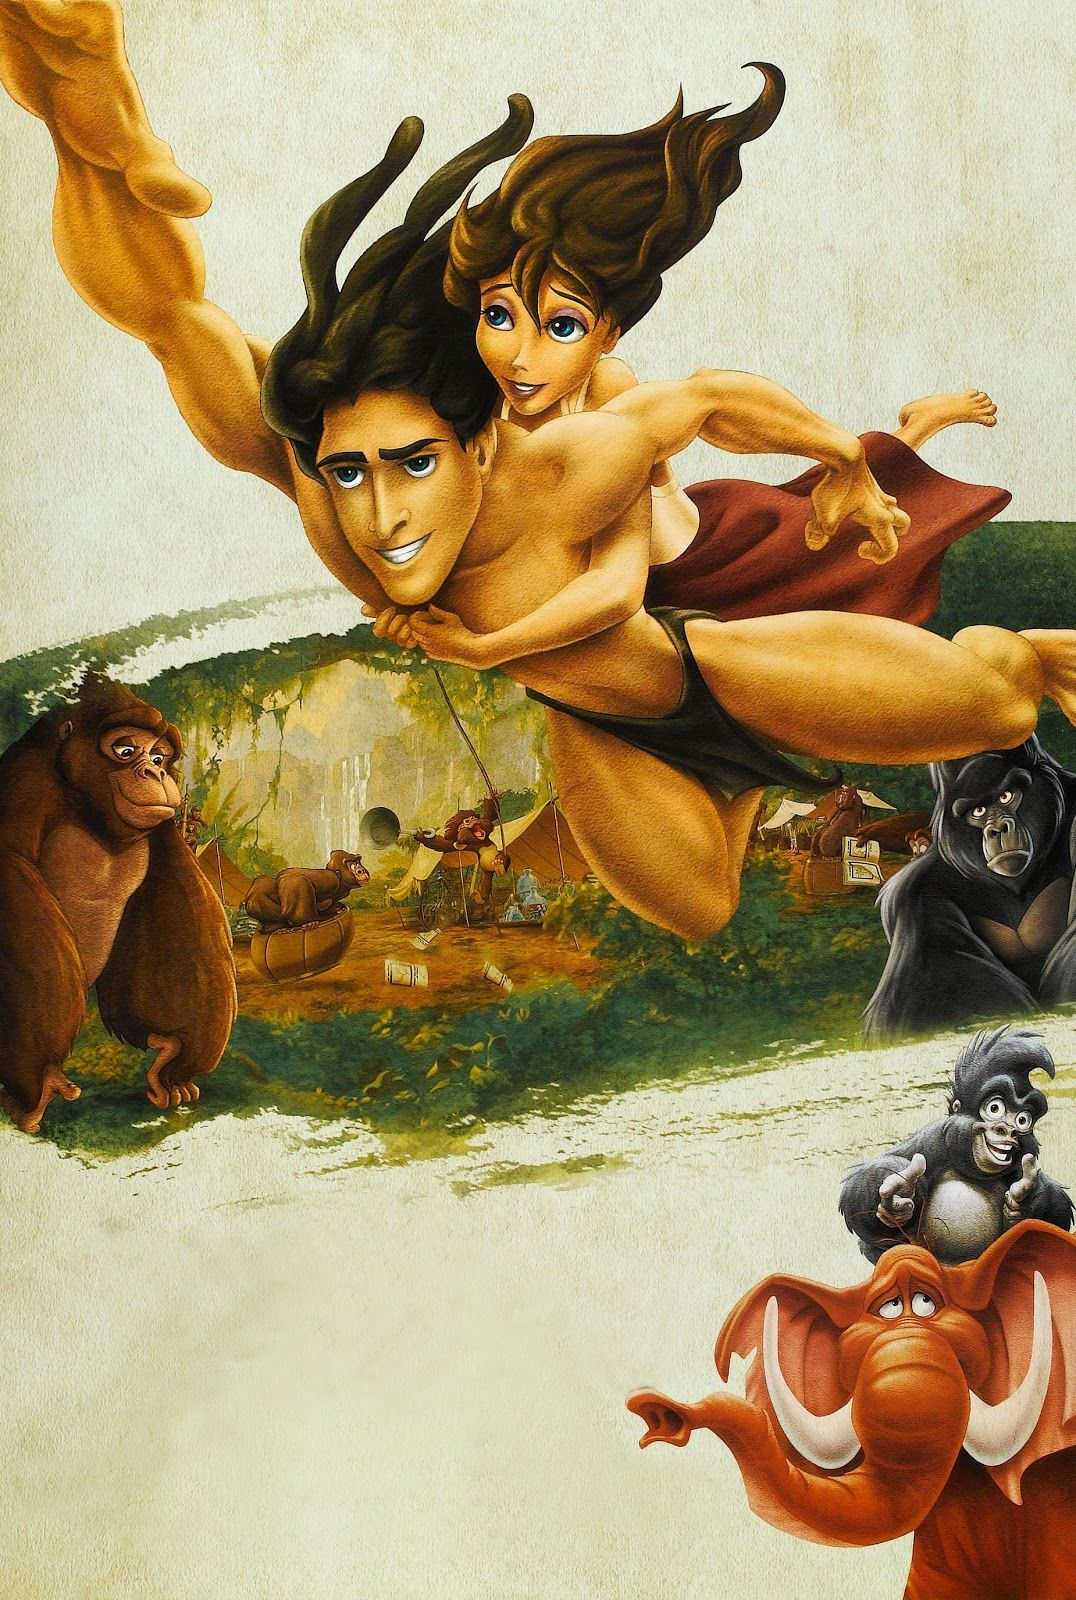 Tarzan wallpapers top free tarzan backgrounds - Tarzan wallpaper ...